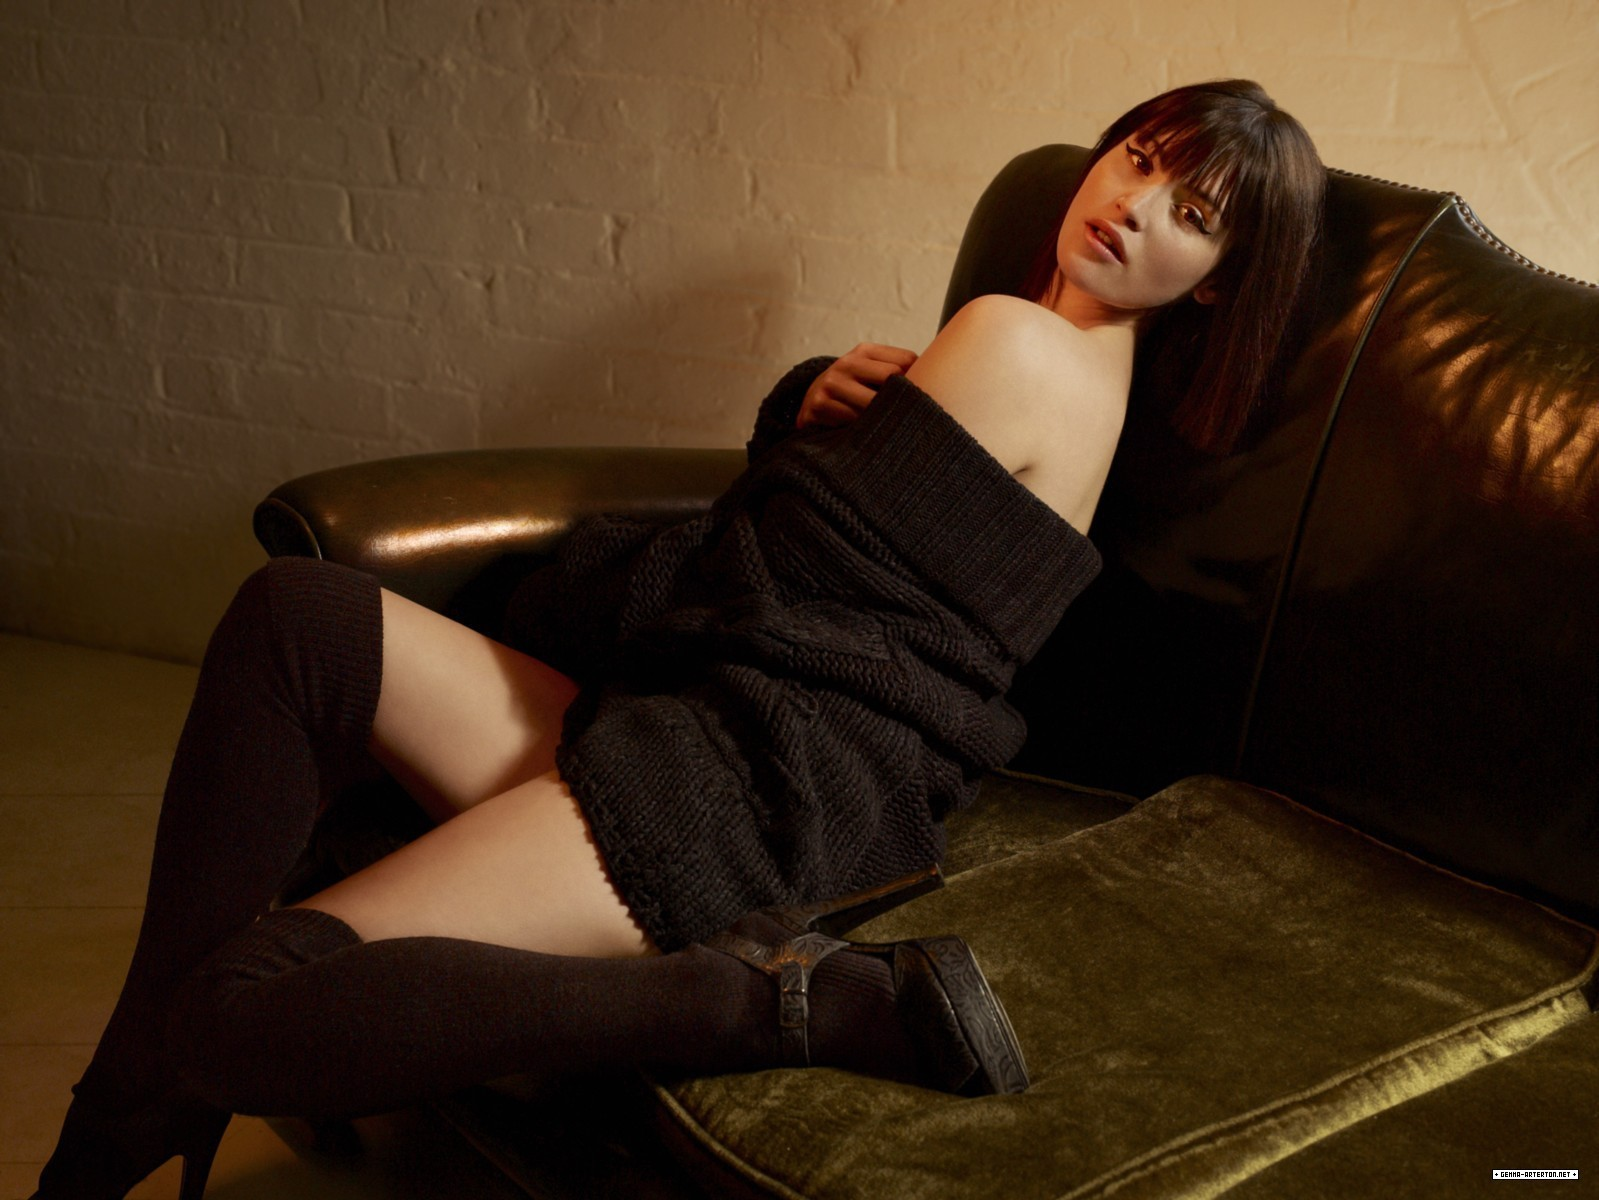 Gemma Arterton | Arena Photoshoot (HQ)